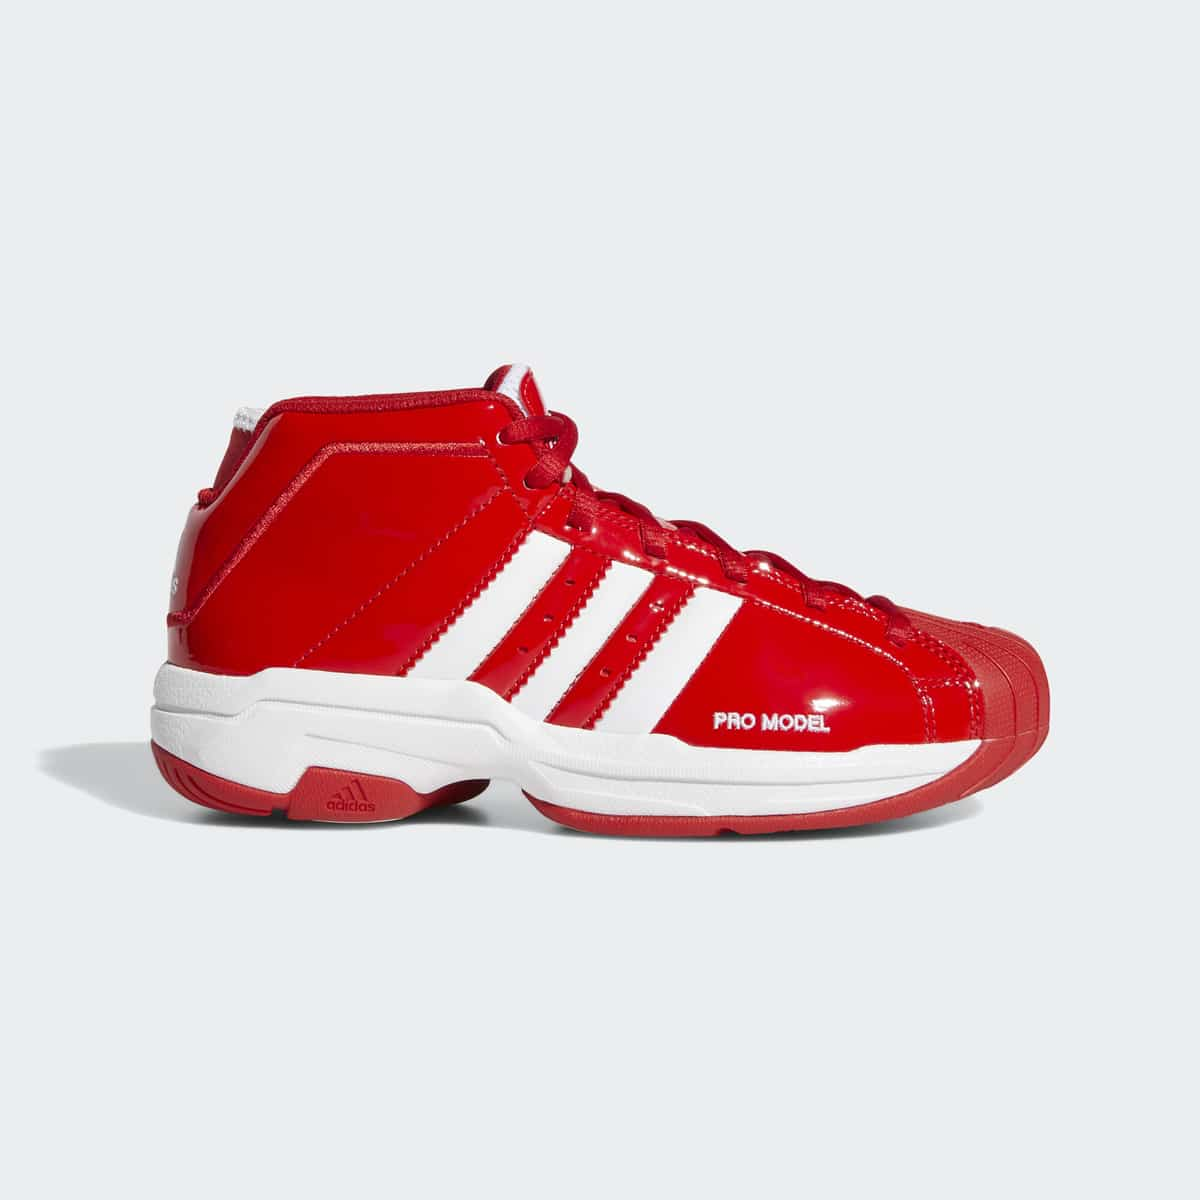 en soldes e91d0 5f72e The adidas Pro Model 2G to Return with Updated Bounce ...